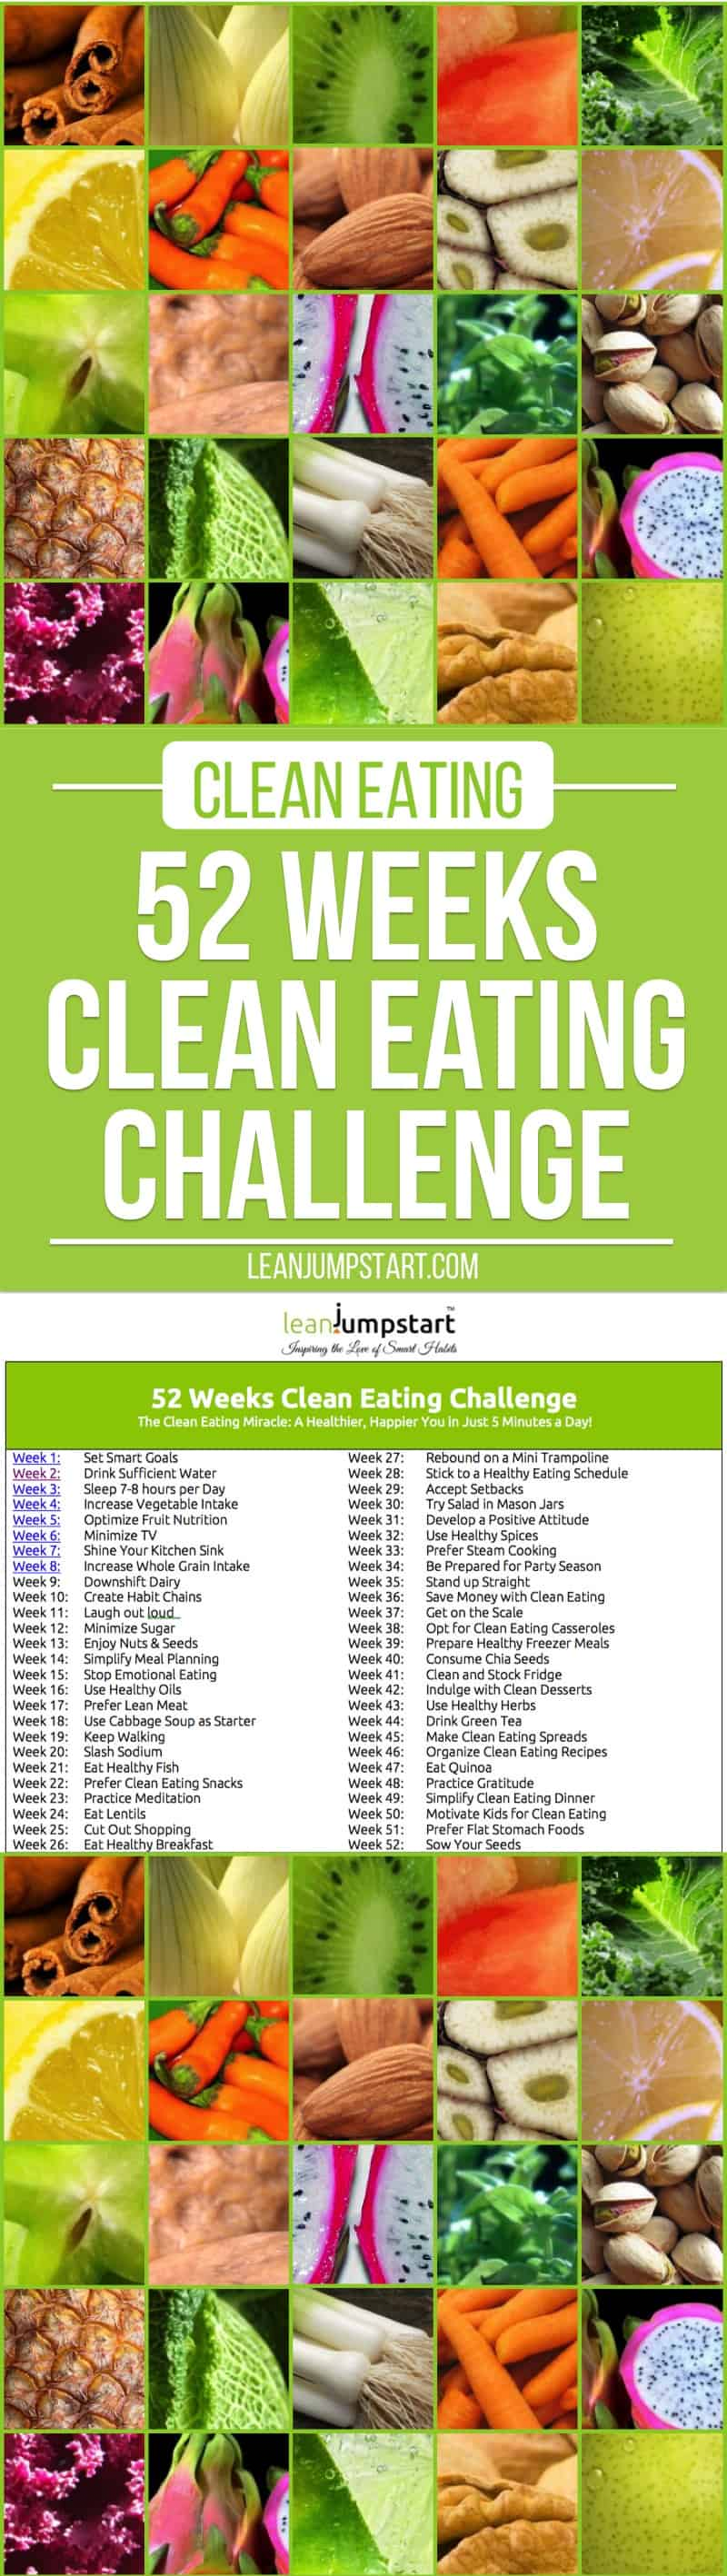 52 weeks clean eating challenge: Grab FREE schedule!